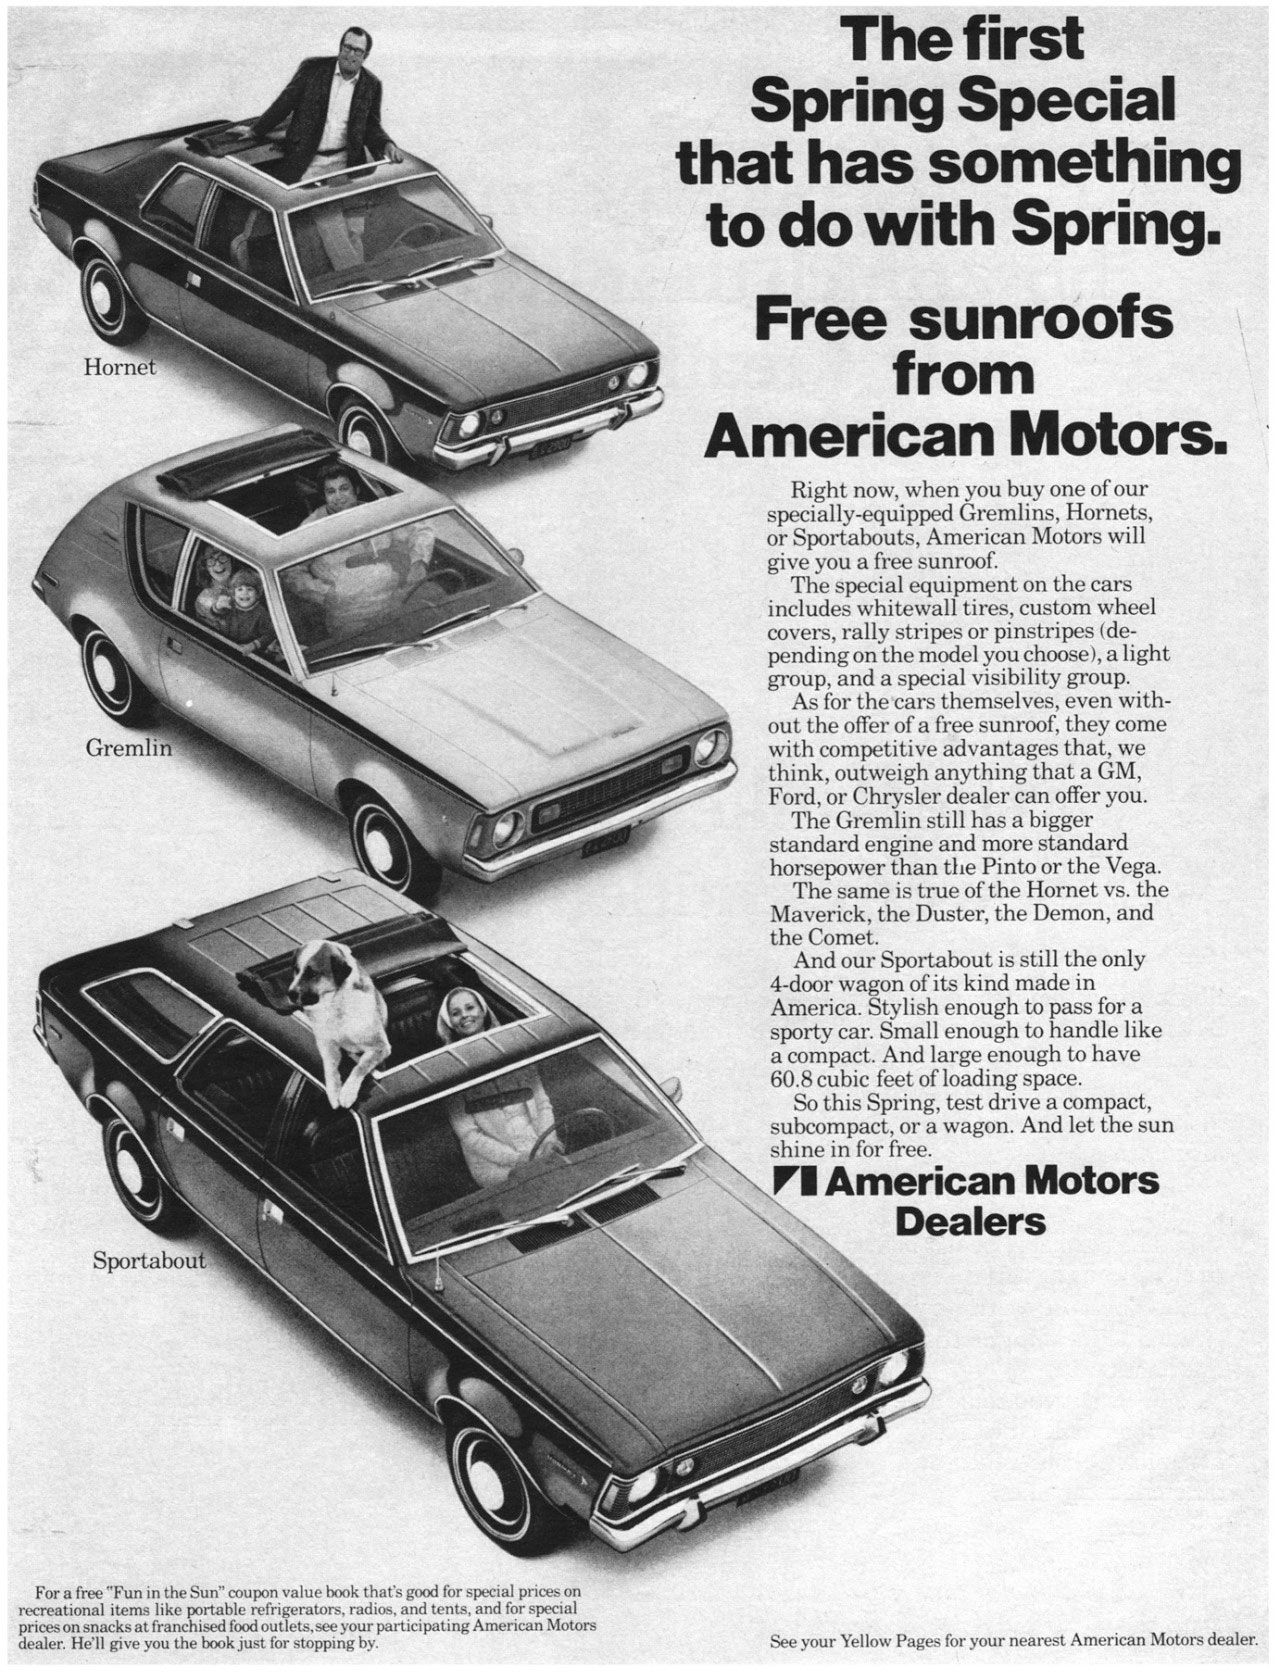 The first Spring Special that has something to do with Spring. Free sunroofs from American Motors.  Right now, when you buy one of our specially-equipped Gremlins, Hornets, or Sportabouts, American Motors will give you a free sunroof. The special equipment on the cars includes whitewall tires, custom wheel covers, rally stripes or pinstripes (de-pending on the model you choose), a light group, and a special visibility group. As for the cars themselves, even with-out the offer of a free sunroof, they come with competitive advantages that, we think, outweigh anything that a GM, Ford, or Chrysler dealer can offer you. The Gremlin still has a bigger standard engine and more standard horsepower than the Pinto or the Vega. The same is true of the Hornet vs. the Maverick, the Duster, the Demon, and the Comet. And our Sportabout is still the only 4-door wagon of its kind made in America. Stylish enough to pass for a sporty car. Small enough to handle like a compact. And large enough to have 60.8 cubic feet of loading space. So this Spring, test drive a compact, subcompact, or a wagon. And let the sun shine in for free. II American Motors Dealers  For a free ''Fun in the Sun' coupon value book that's good for special prices on recreational items like portable refrigerators, radios, and ten., and for special prices on snacks at franchised food outlets, see your participating American Motors dealer. He'll give you the book just for stopping by.  See your Yellow Pages for your nearest American Motors dealer.